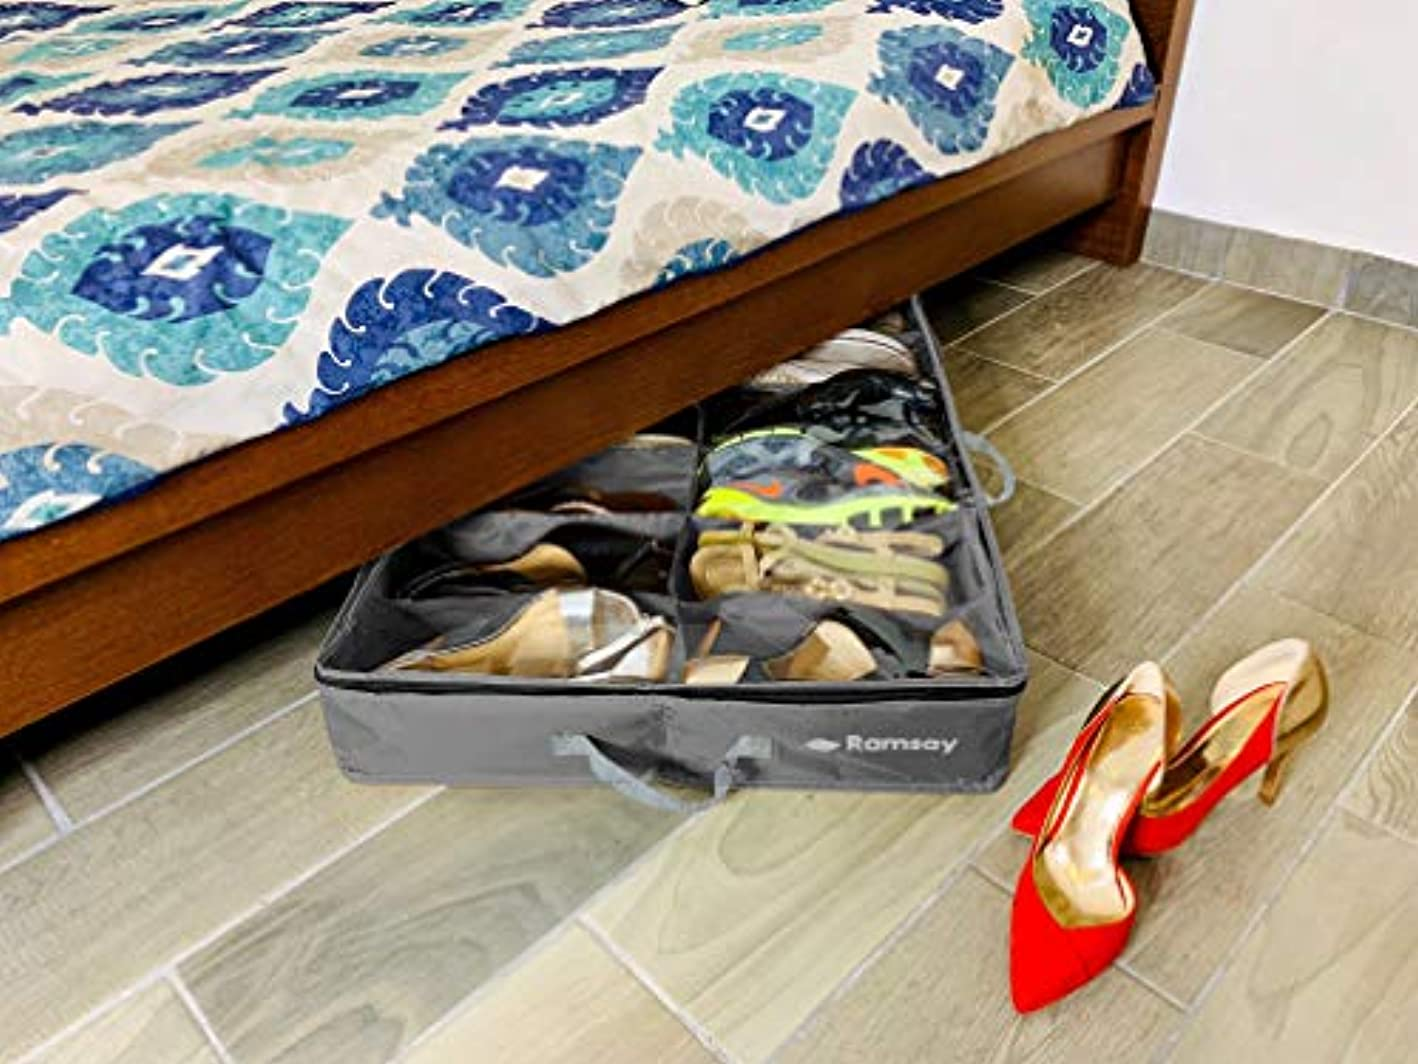 Ramsay Under Under Bed Shoe Storage Organizer Strong and Sturdy,Double, Dust Free Design, Space Saver, 12 Pair Front Zippered Closure, Grey